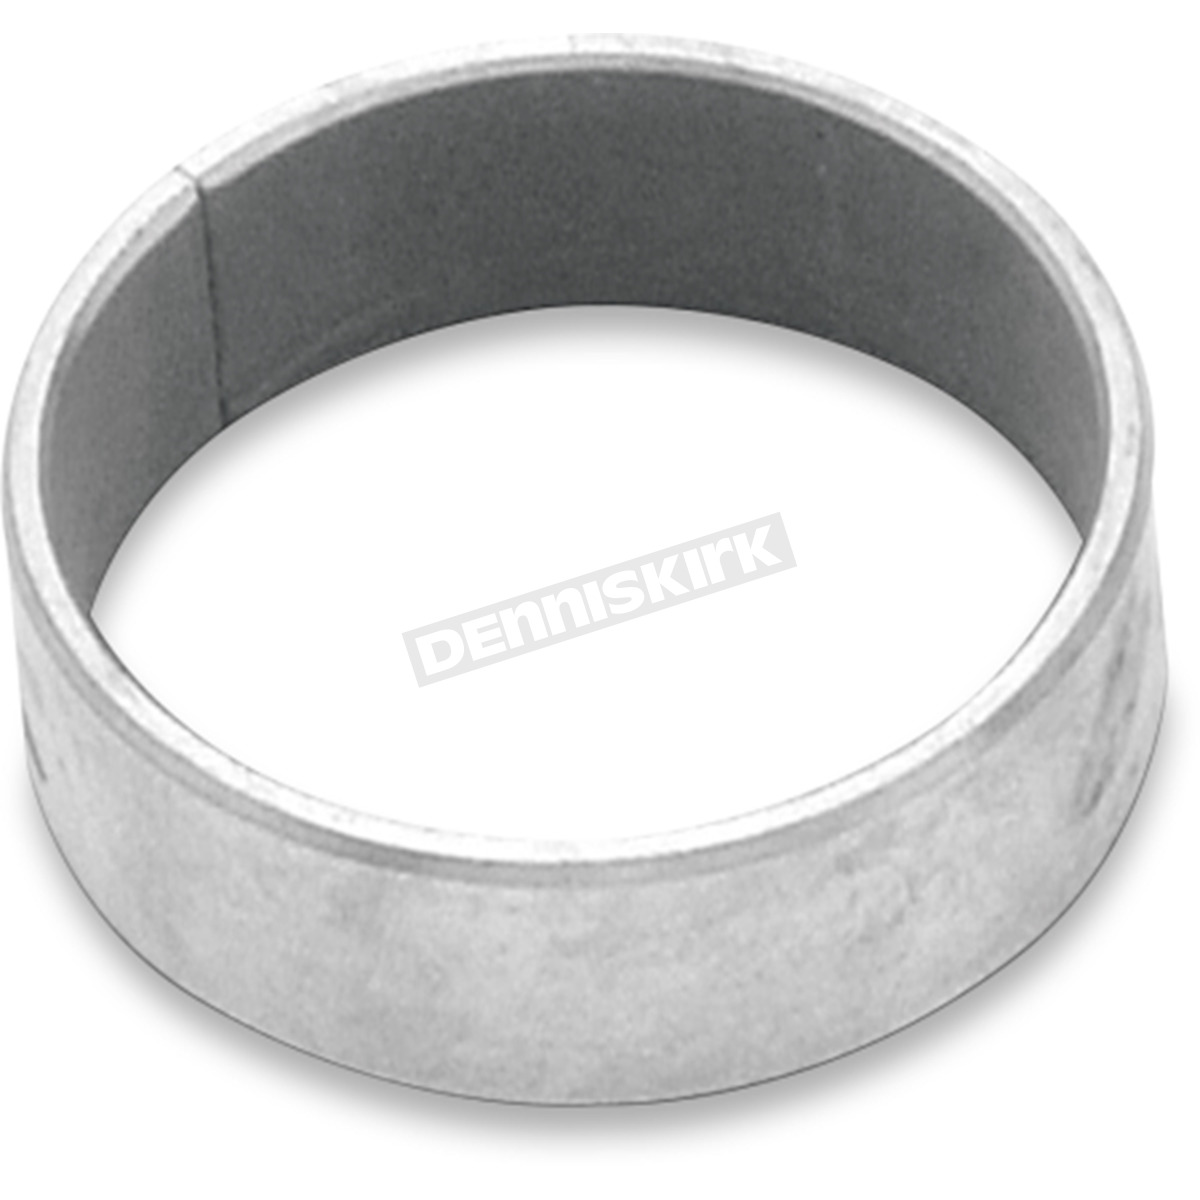 Inner Primary Cover Bushing Sleeve,for Harley Davidson,by V-Twin